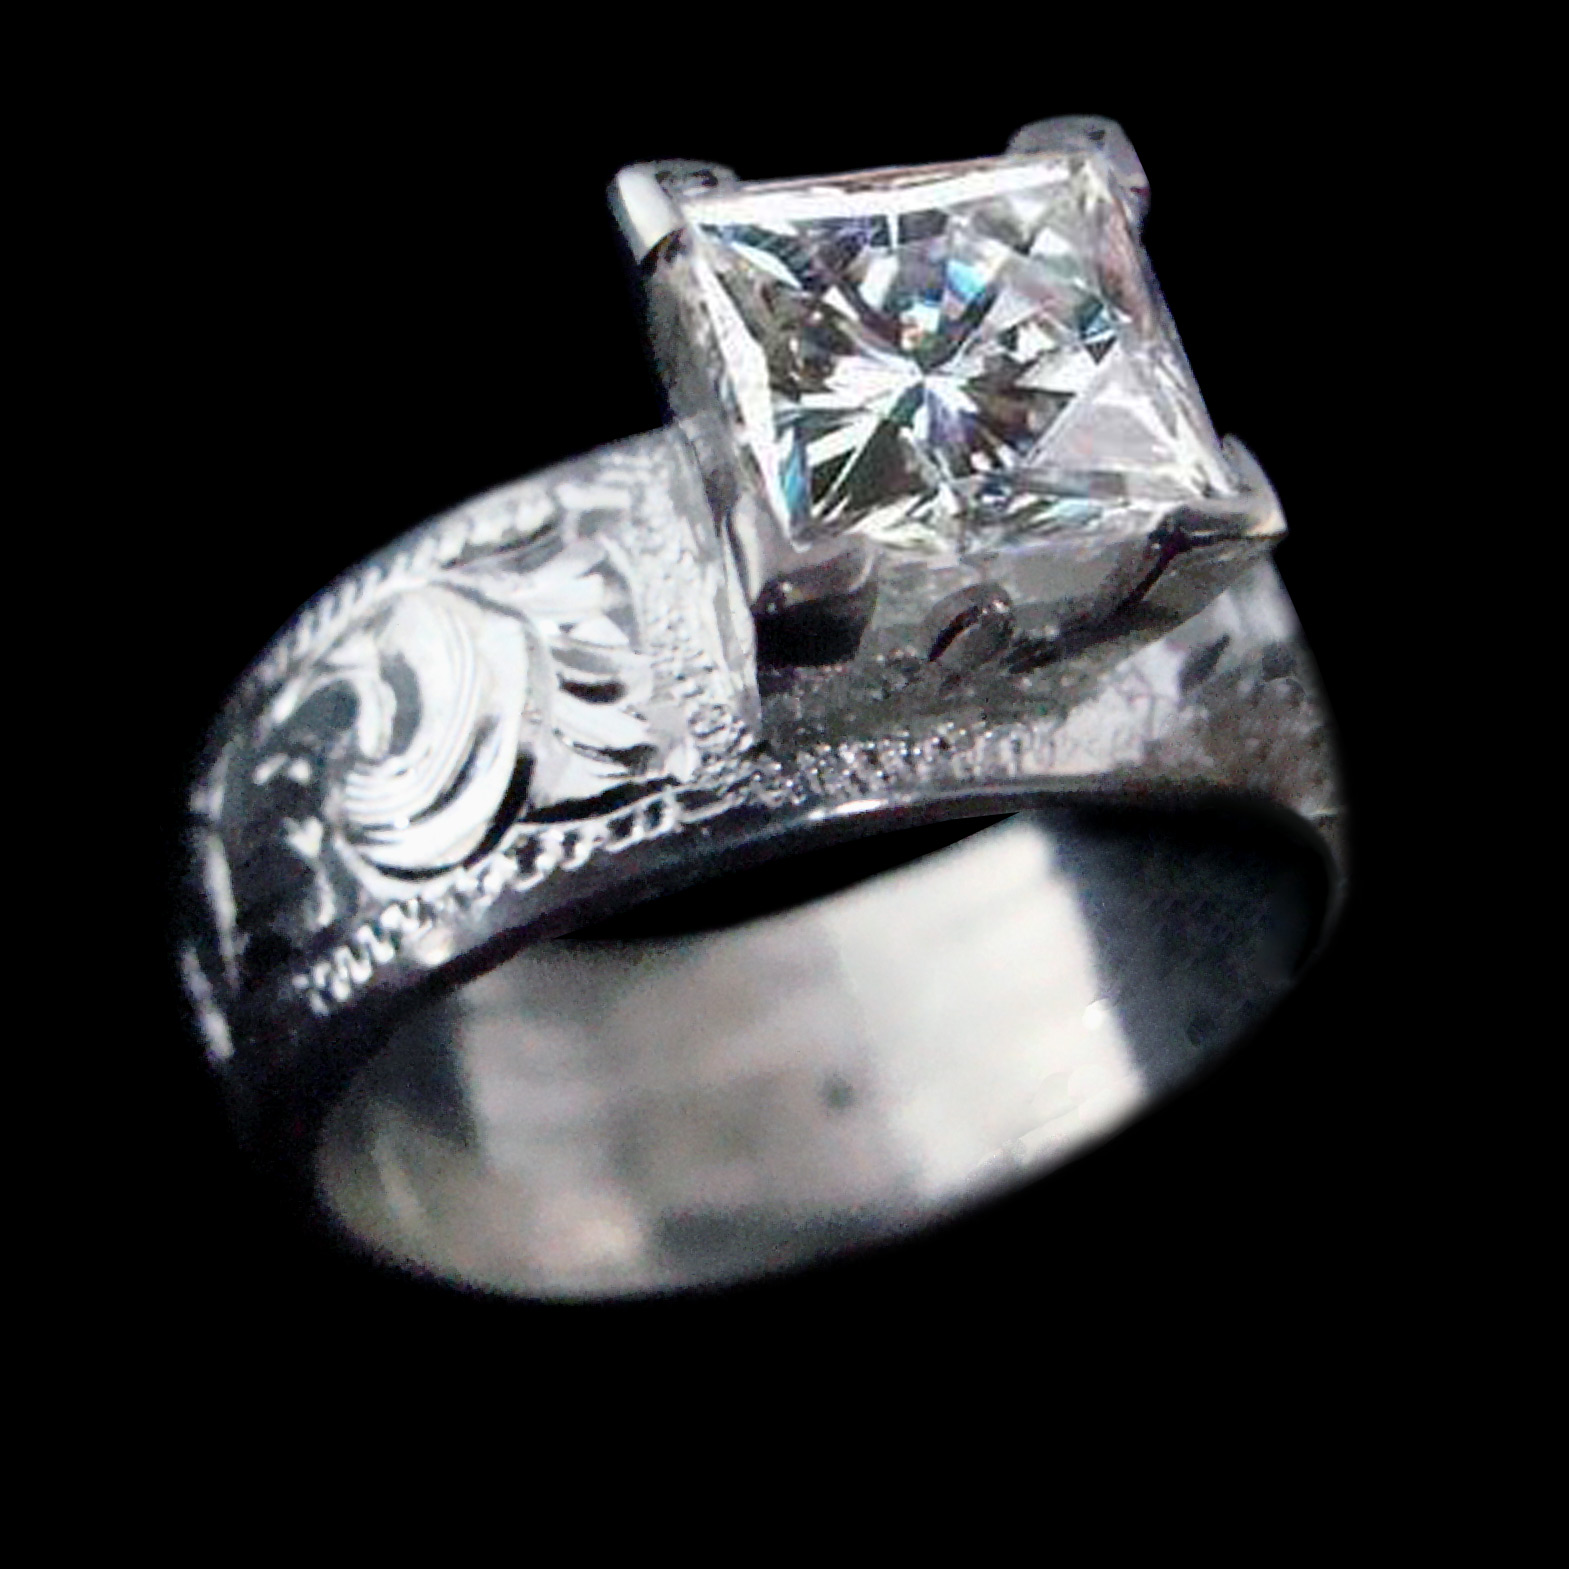 silversmiths times a ring stone wedding three rings nail silversmith silver horseshoe montana